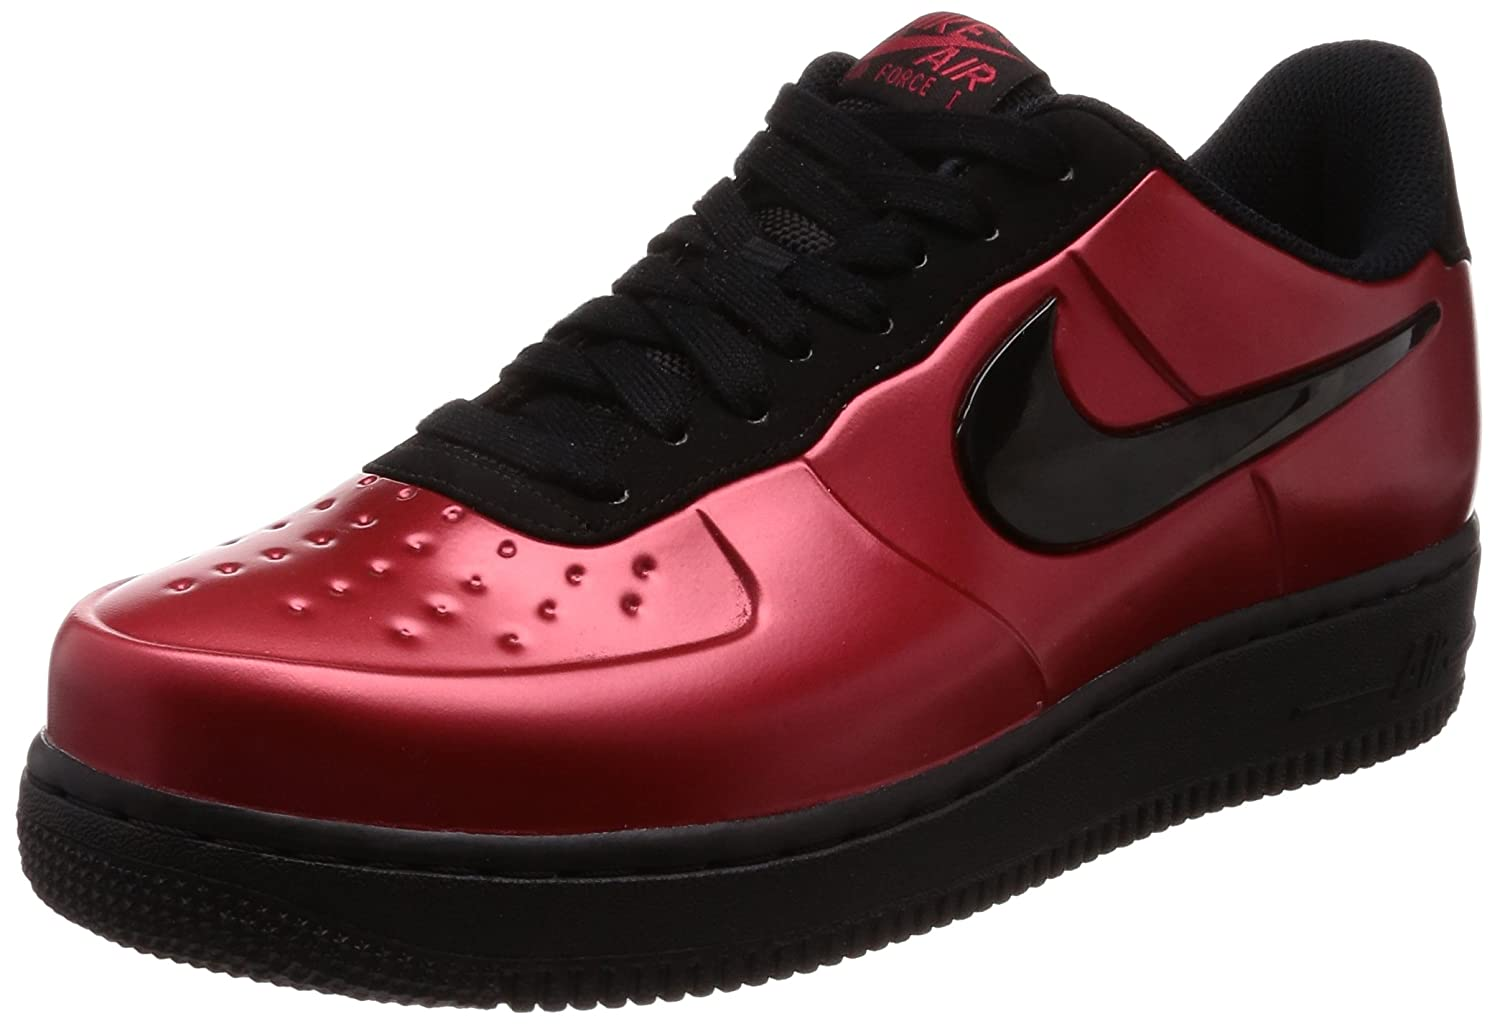 wholesale dealer bb8ce 90018 Nike Men's Sneakers AF1 Foamposite PRO Cup in red Leather ...